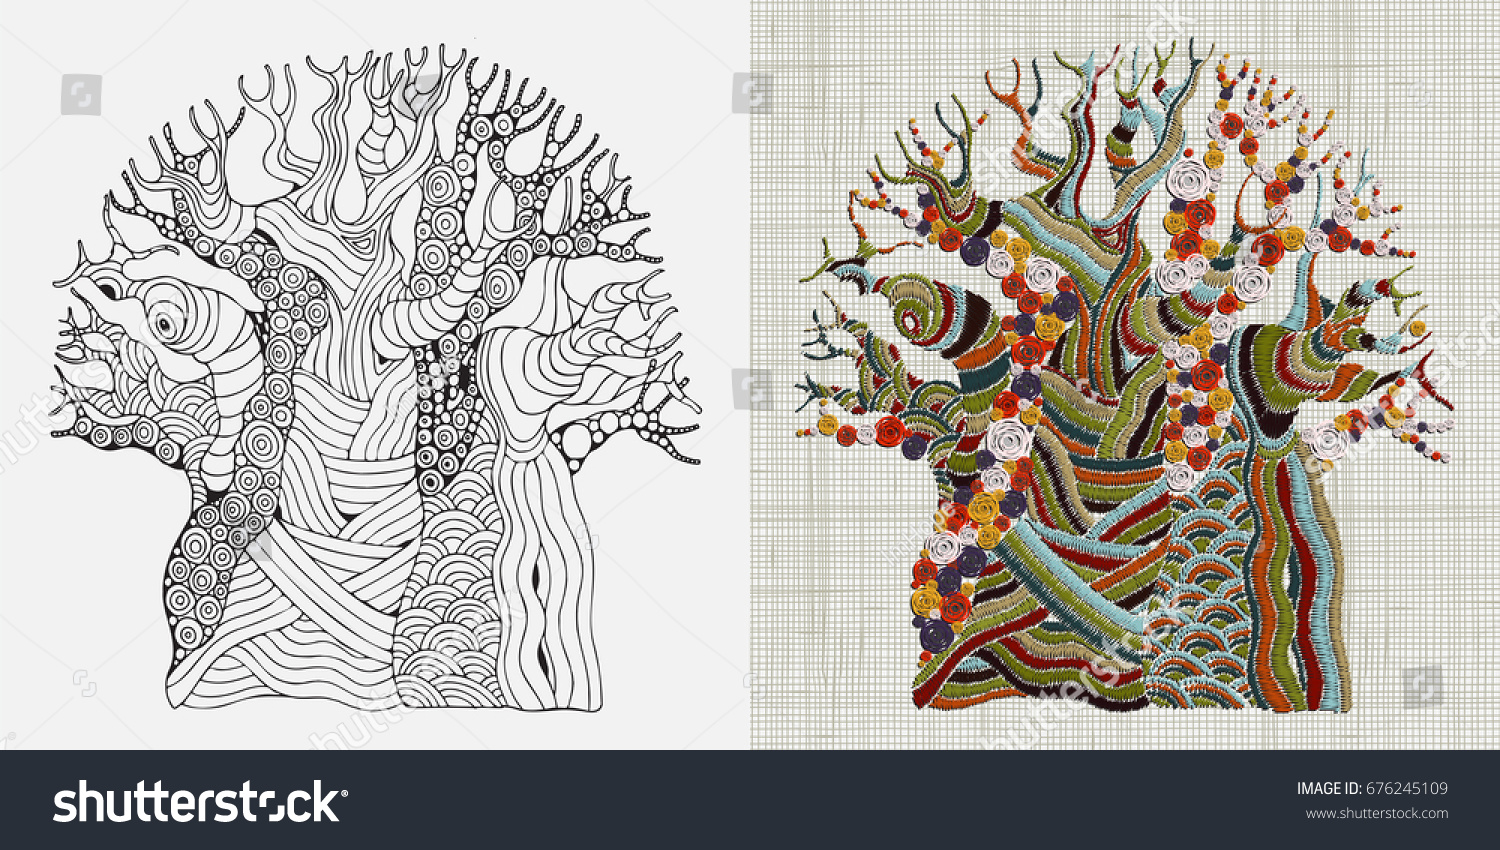 Embroidery pattern hand stitched embroidered baobab stock vector embroidery pattern hand stitched embroidered baobab tree african tree ethnic wall art embroidery bankloansurffo Choice Image